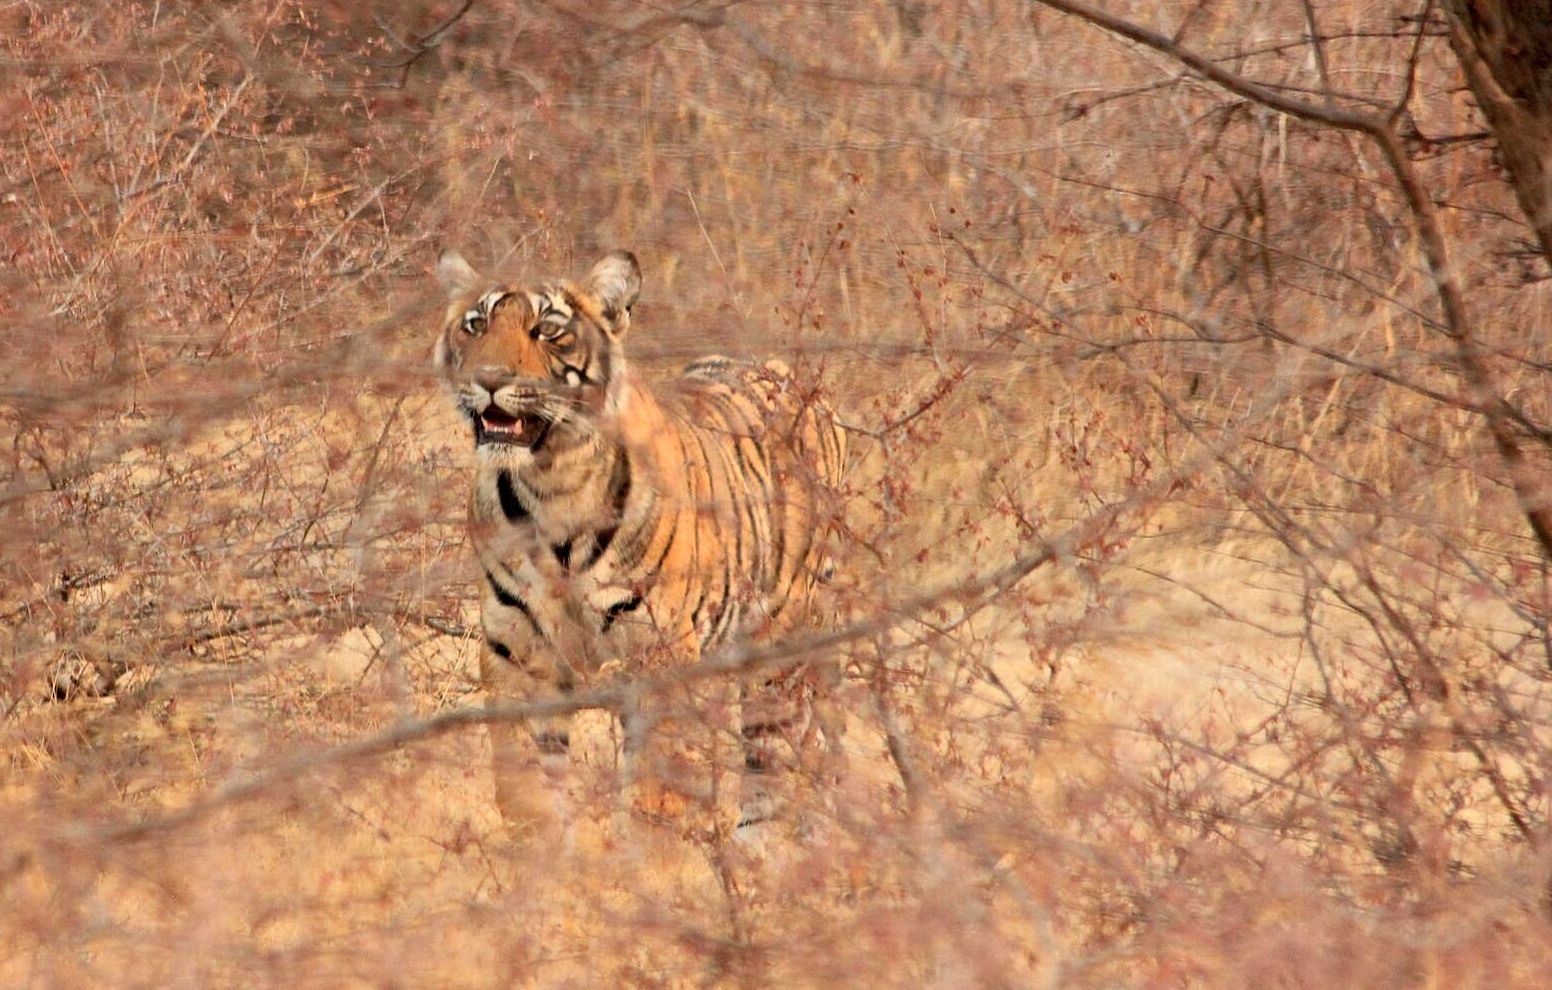 A tiger in the woodland area of Ranthambhore National Park